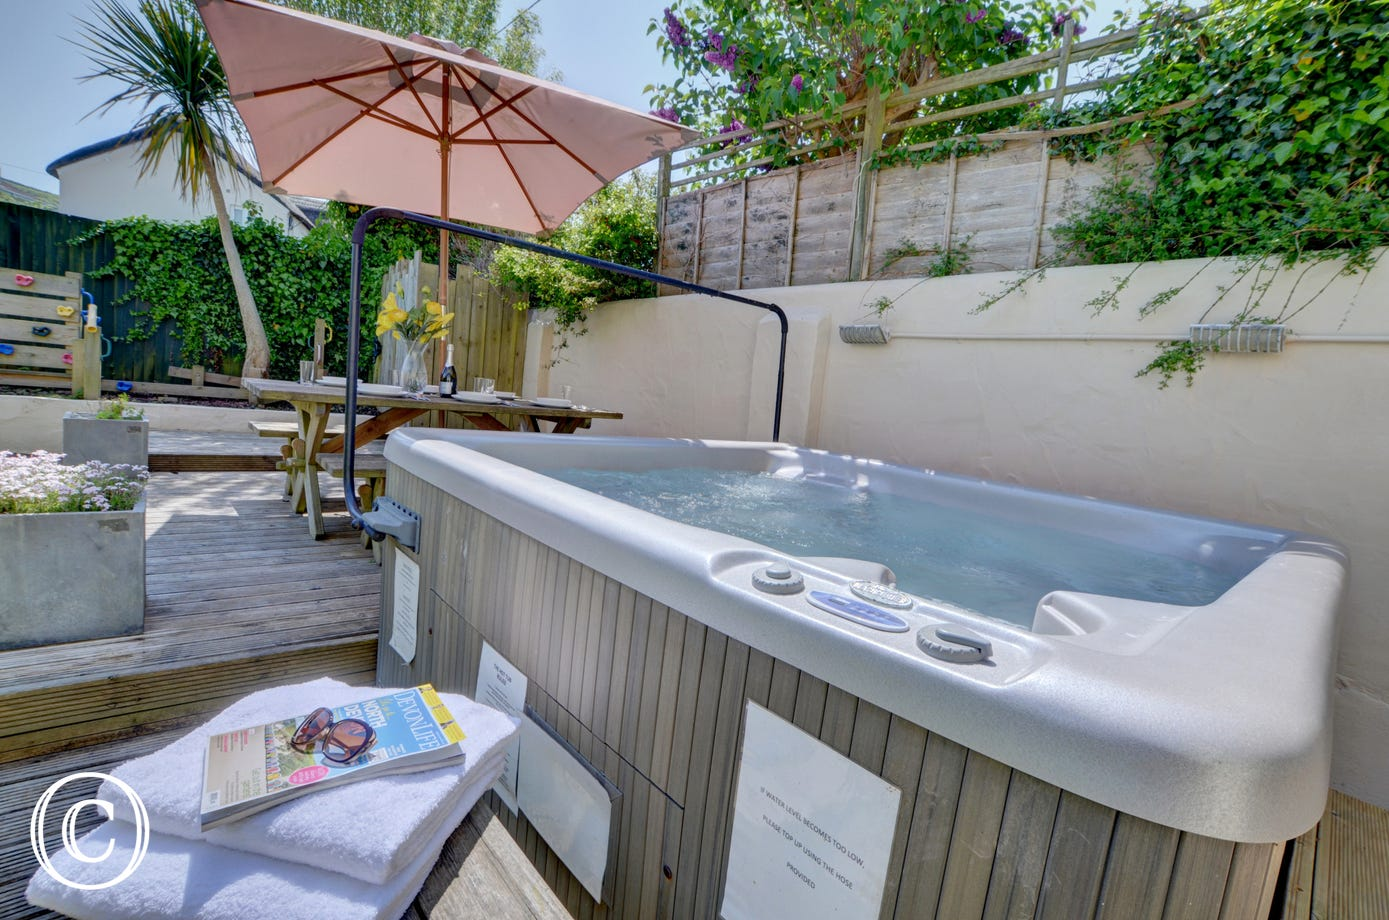 Decking leads around the side of the lawn to the delightful hydro massage hot tub